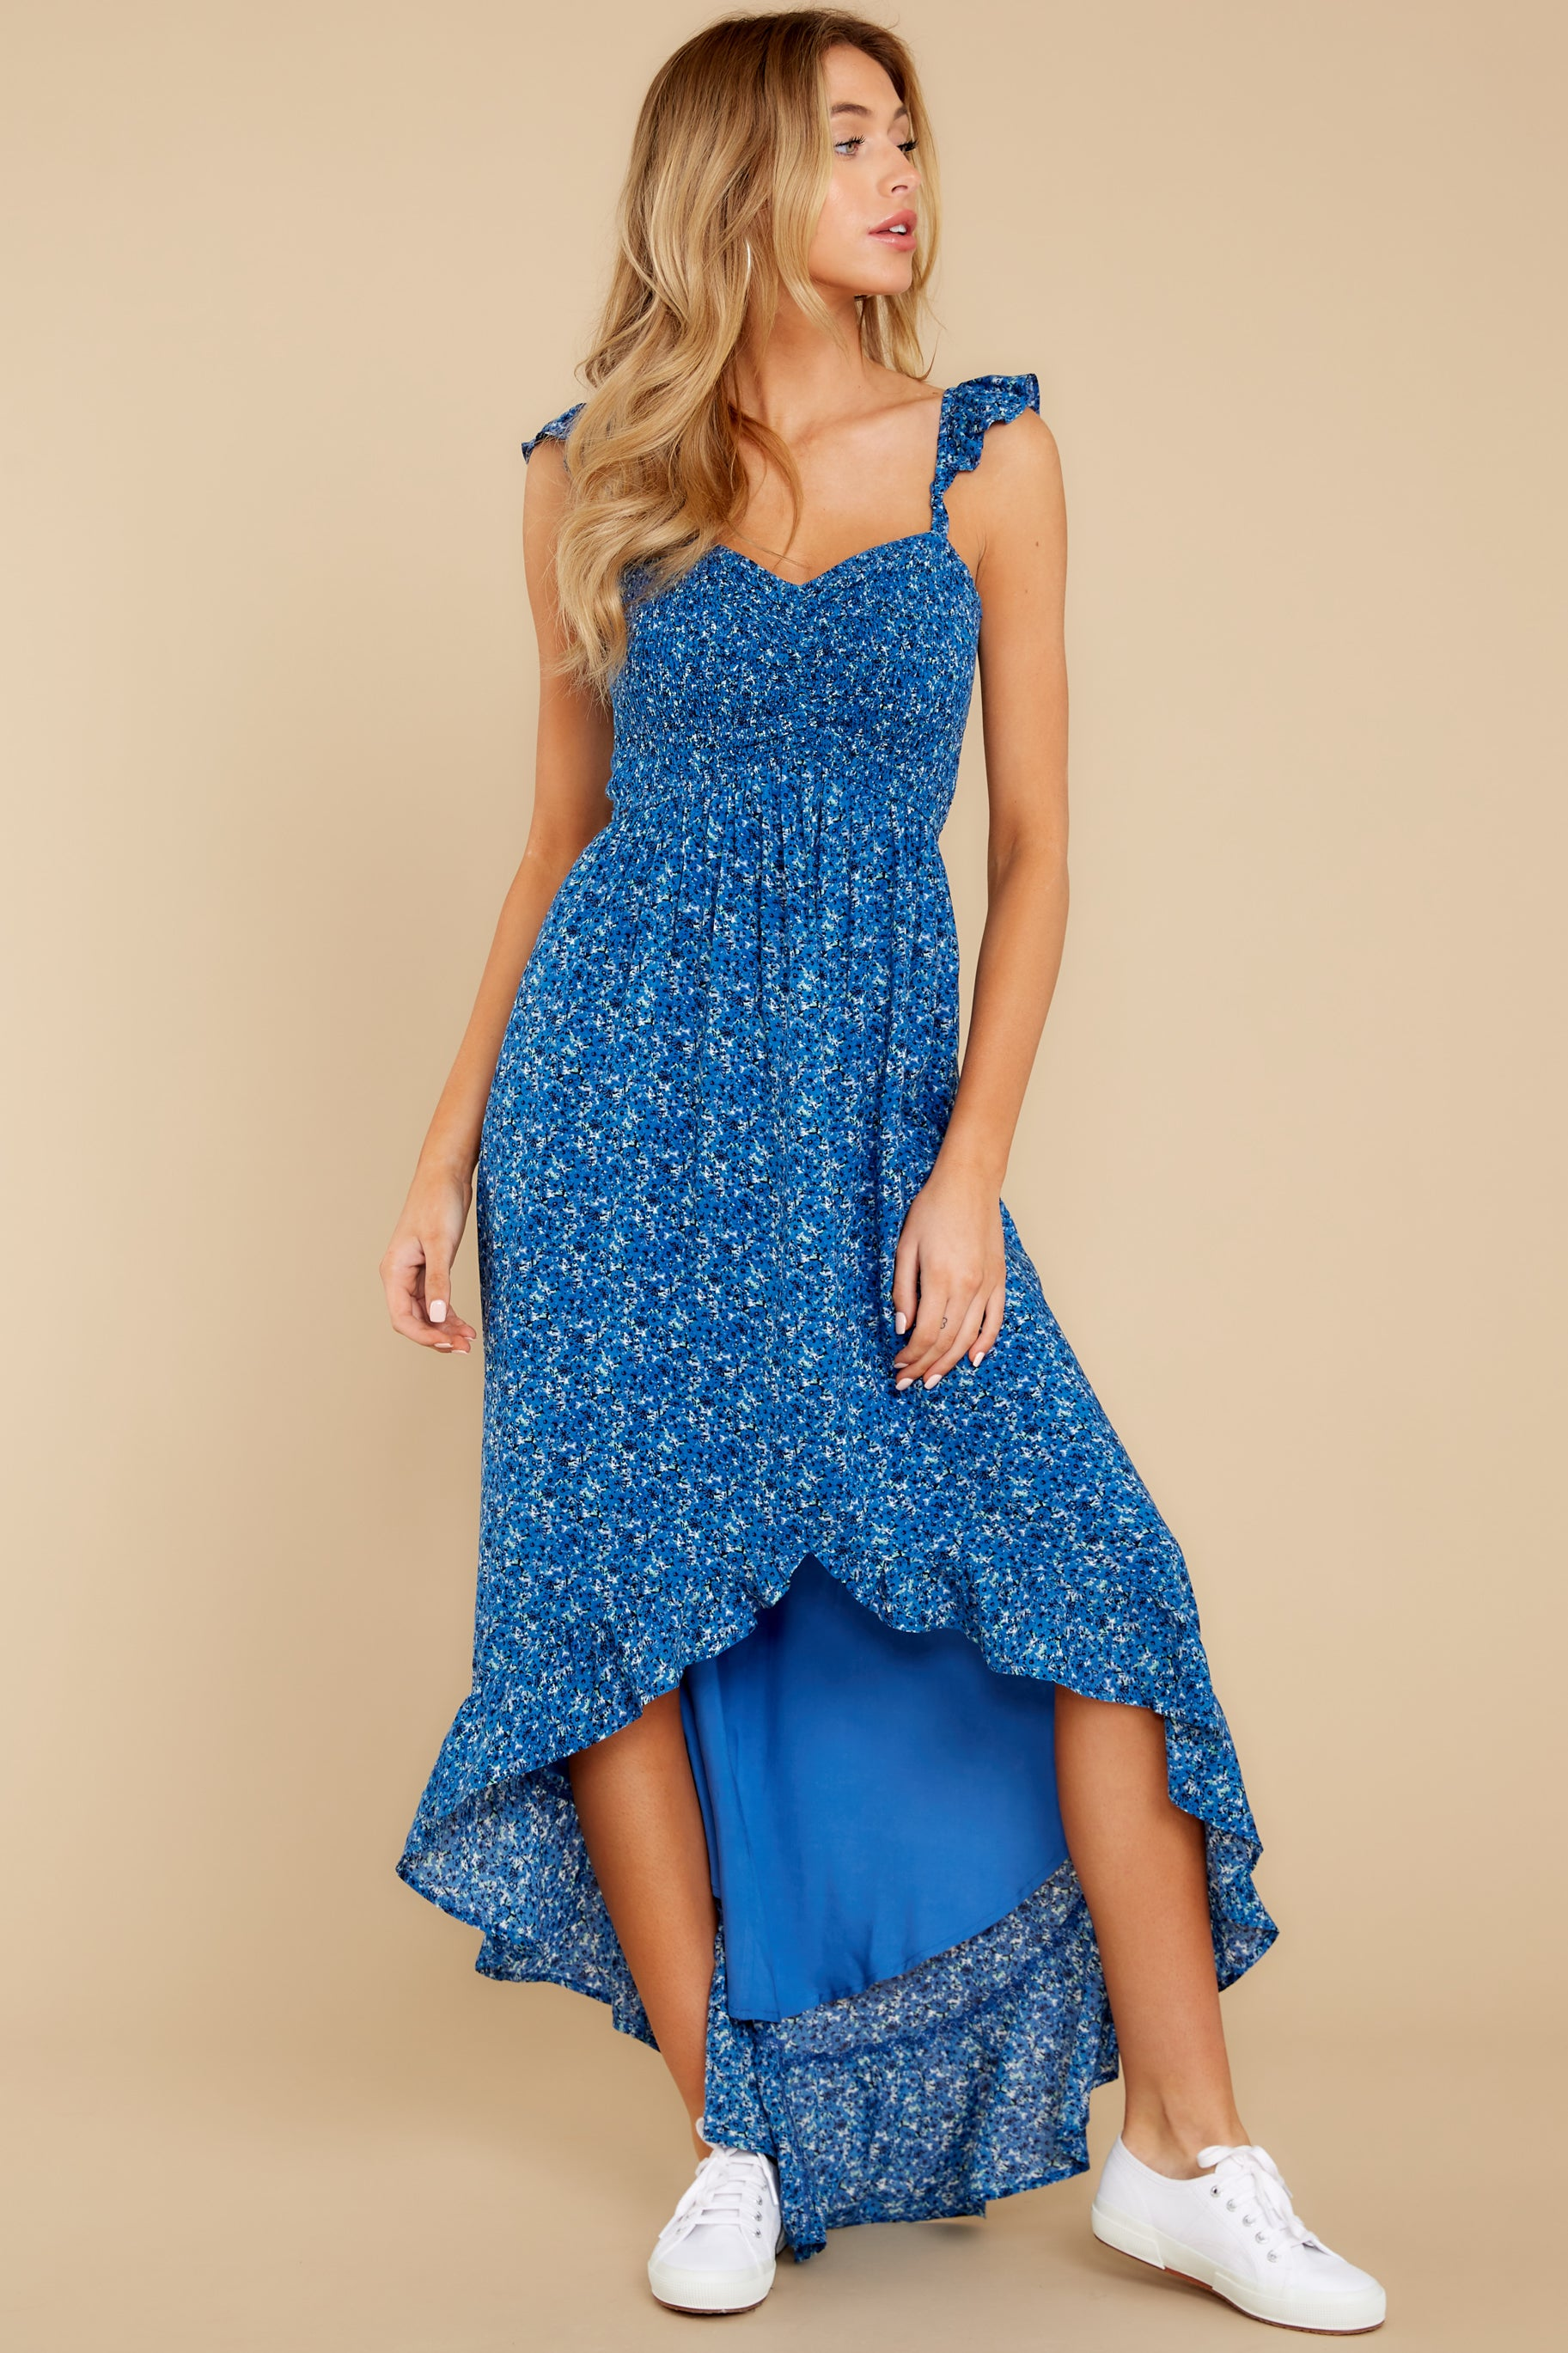 7 Open Waters Blue Print High Low Dress at reddressboutique.com